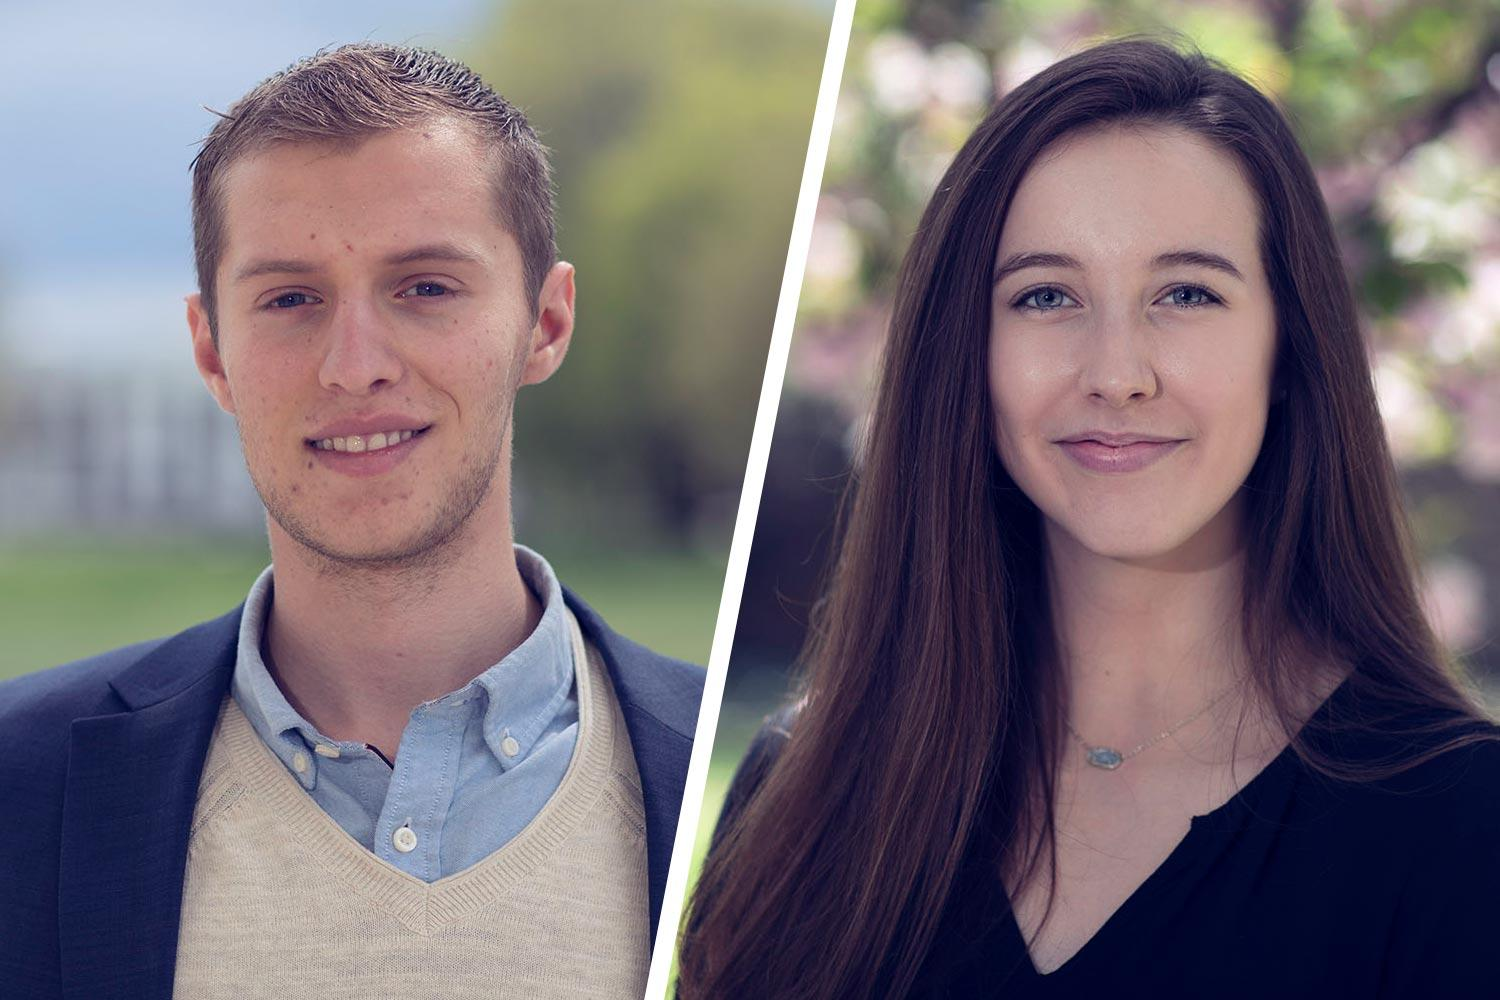 Joshua Zabin, left, and Katherine Gasser earned scholarships to support their study in Tajikistan and Poland, respectively.